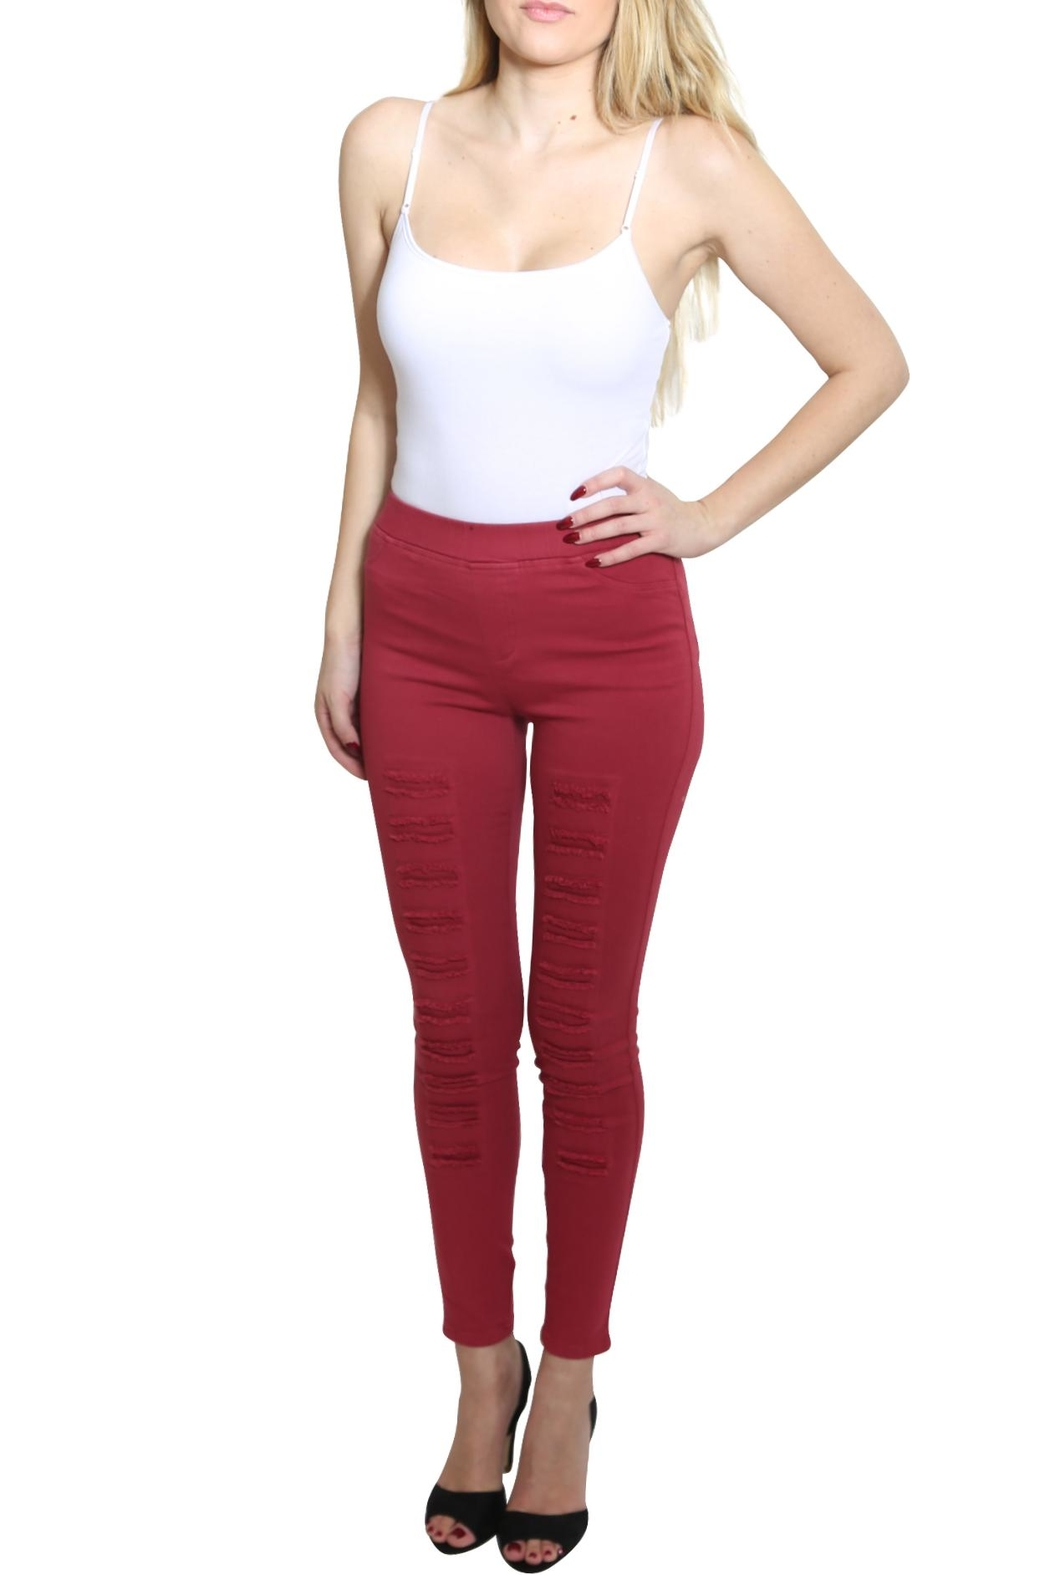 e15ce5cc76 Umgee USA High Waist Jeggings from Alabama by Infinity Boutique ...